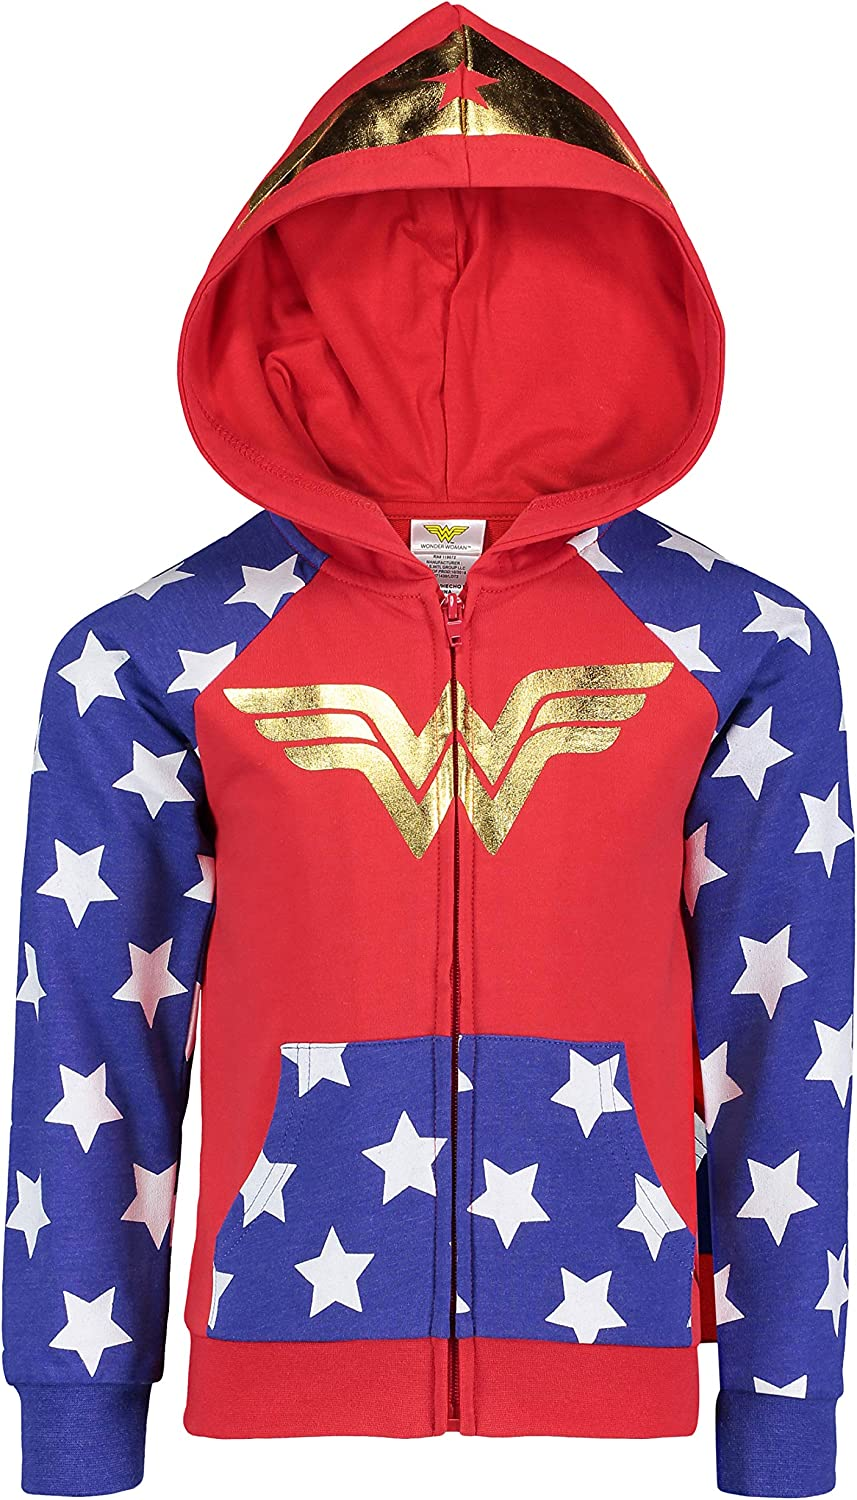 DC Comics 5 843596WNS Wonder Woman Girls Fleece Hoodie with 3D Accents in Red